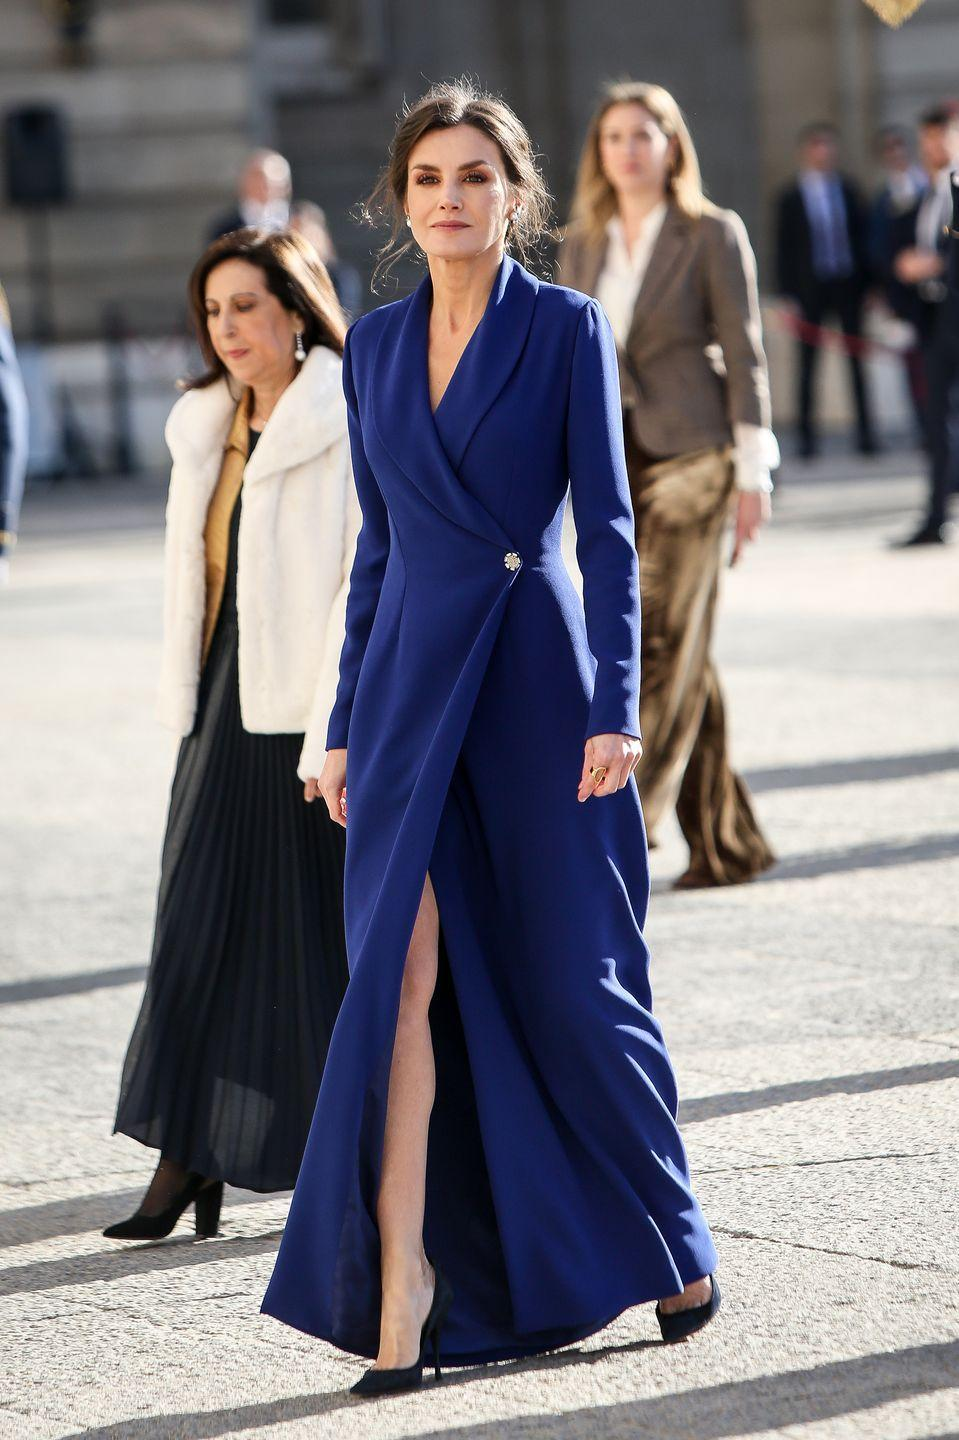 <p>At the New Year Military Parade in Madrid, Letizia stunned in a navy blue wrap dress with a high slit. </p>